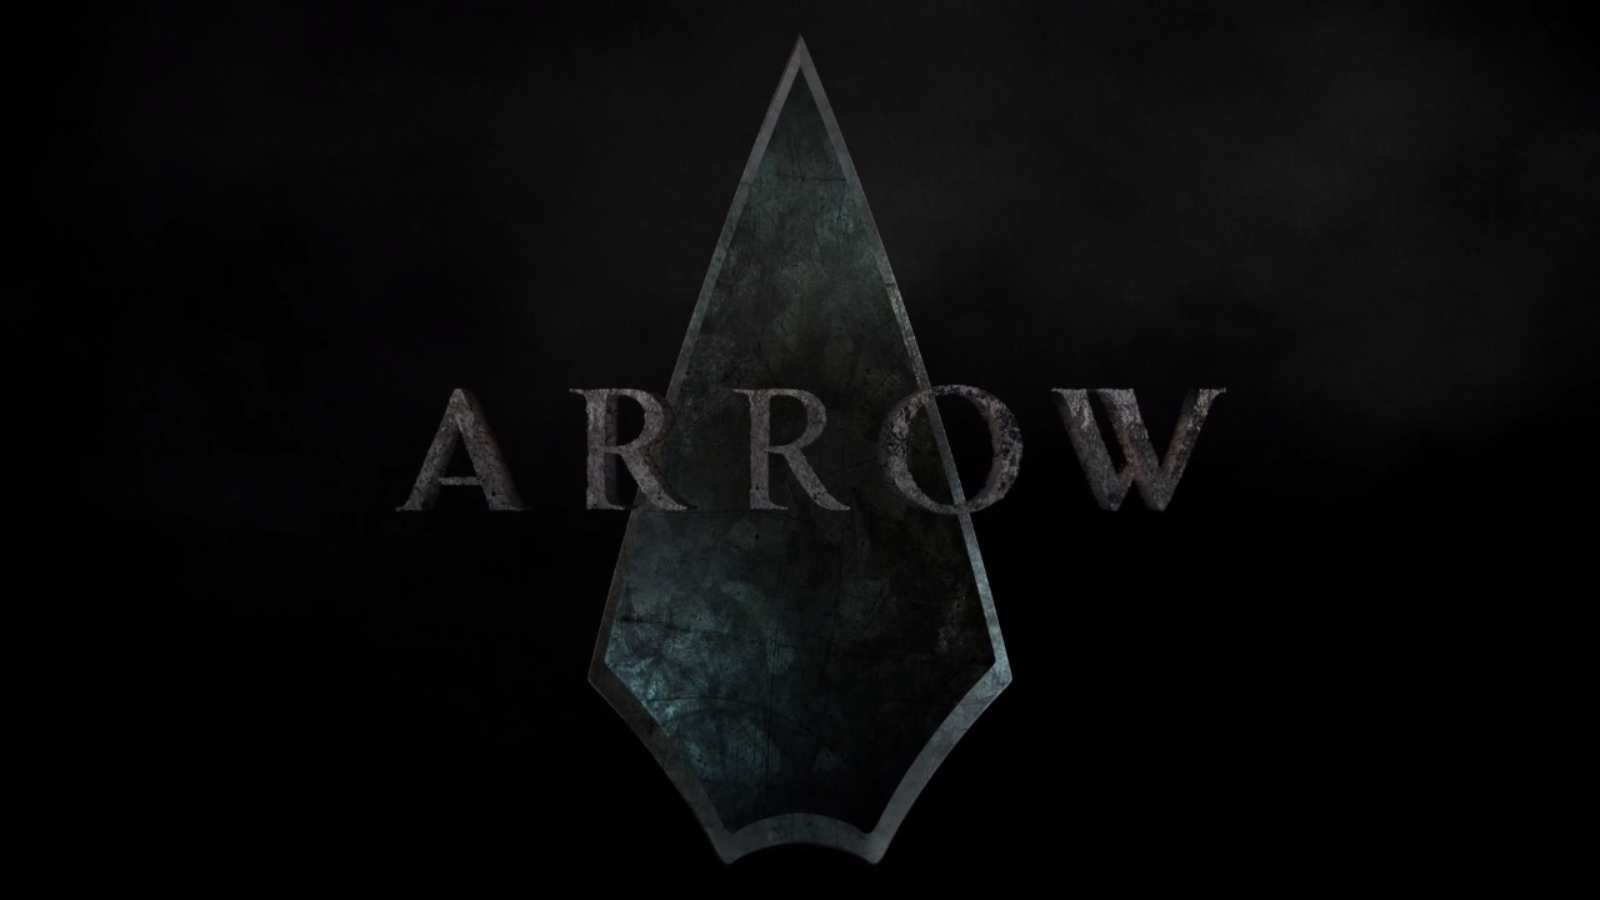 Arrow sera bien diffusé en France